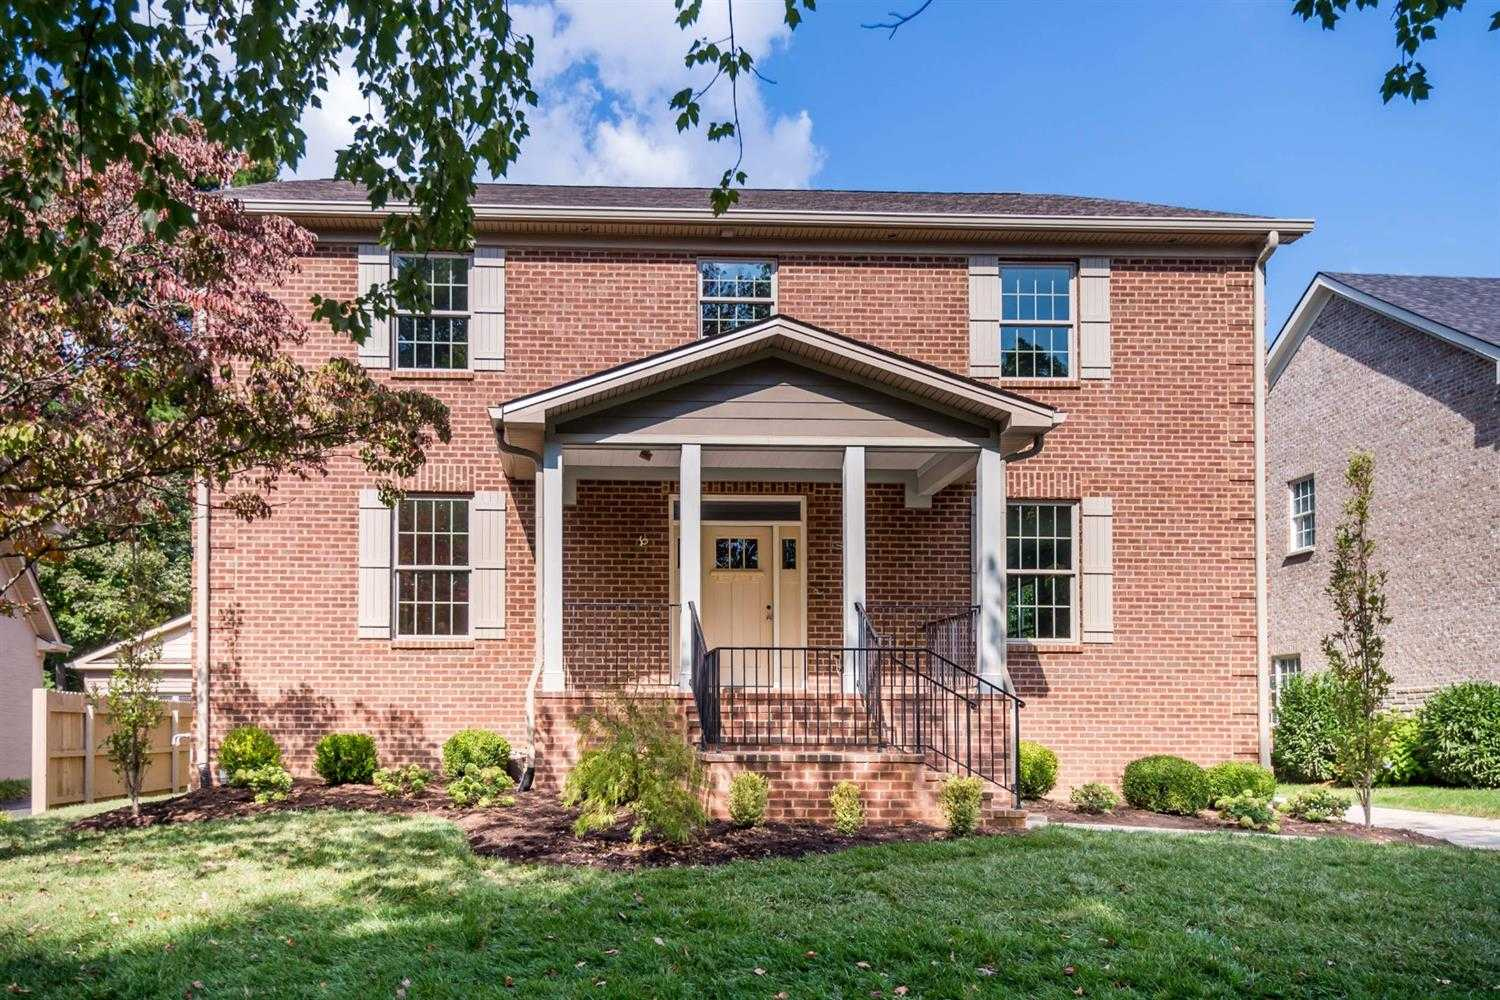 $1,050,000 - 5Br/4Ba -  for Sale in Chevy Chase, Lexington